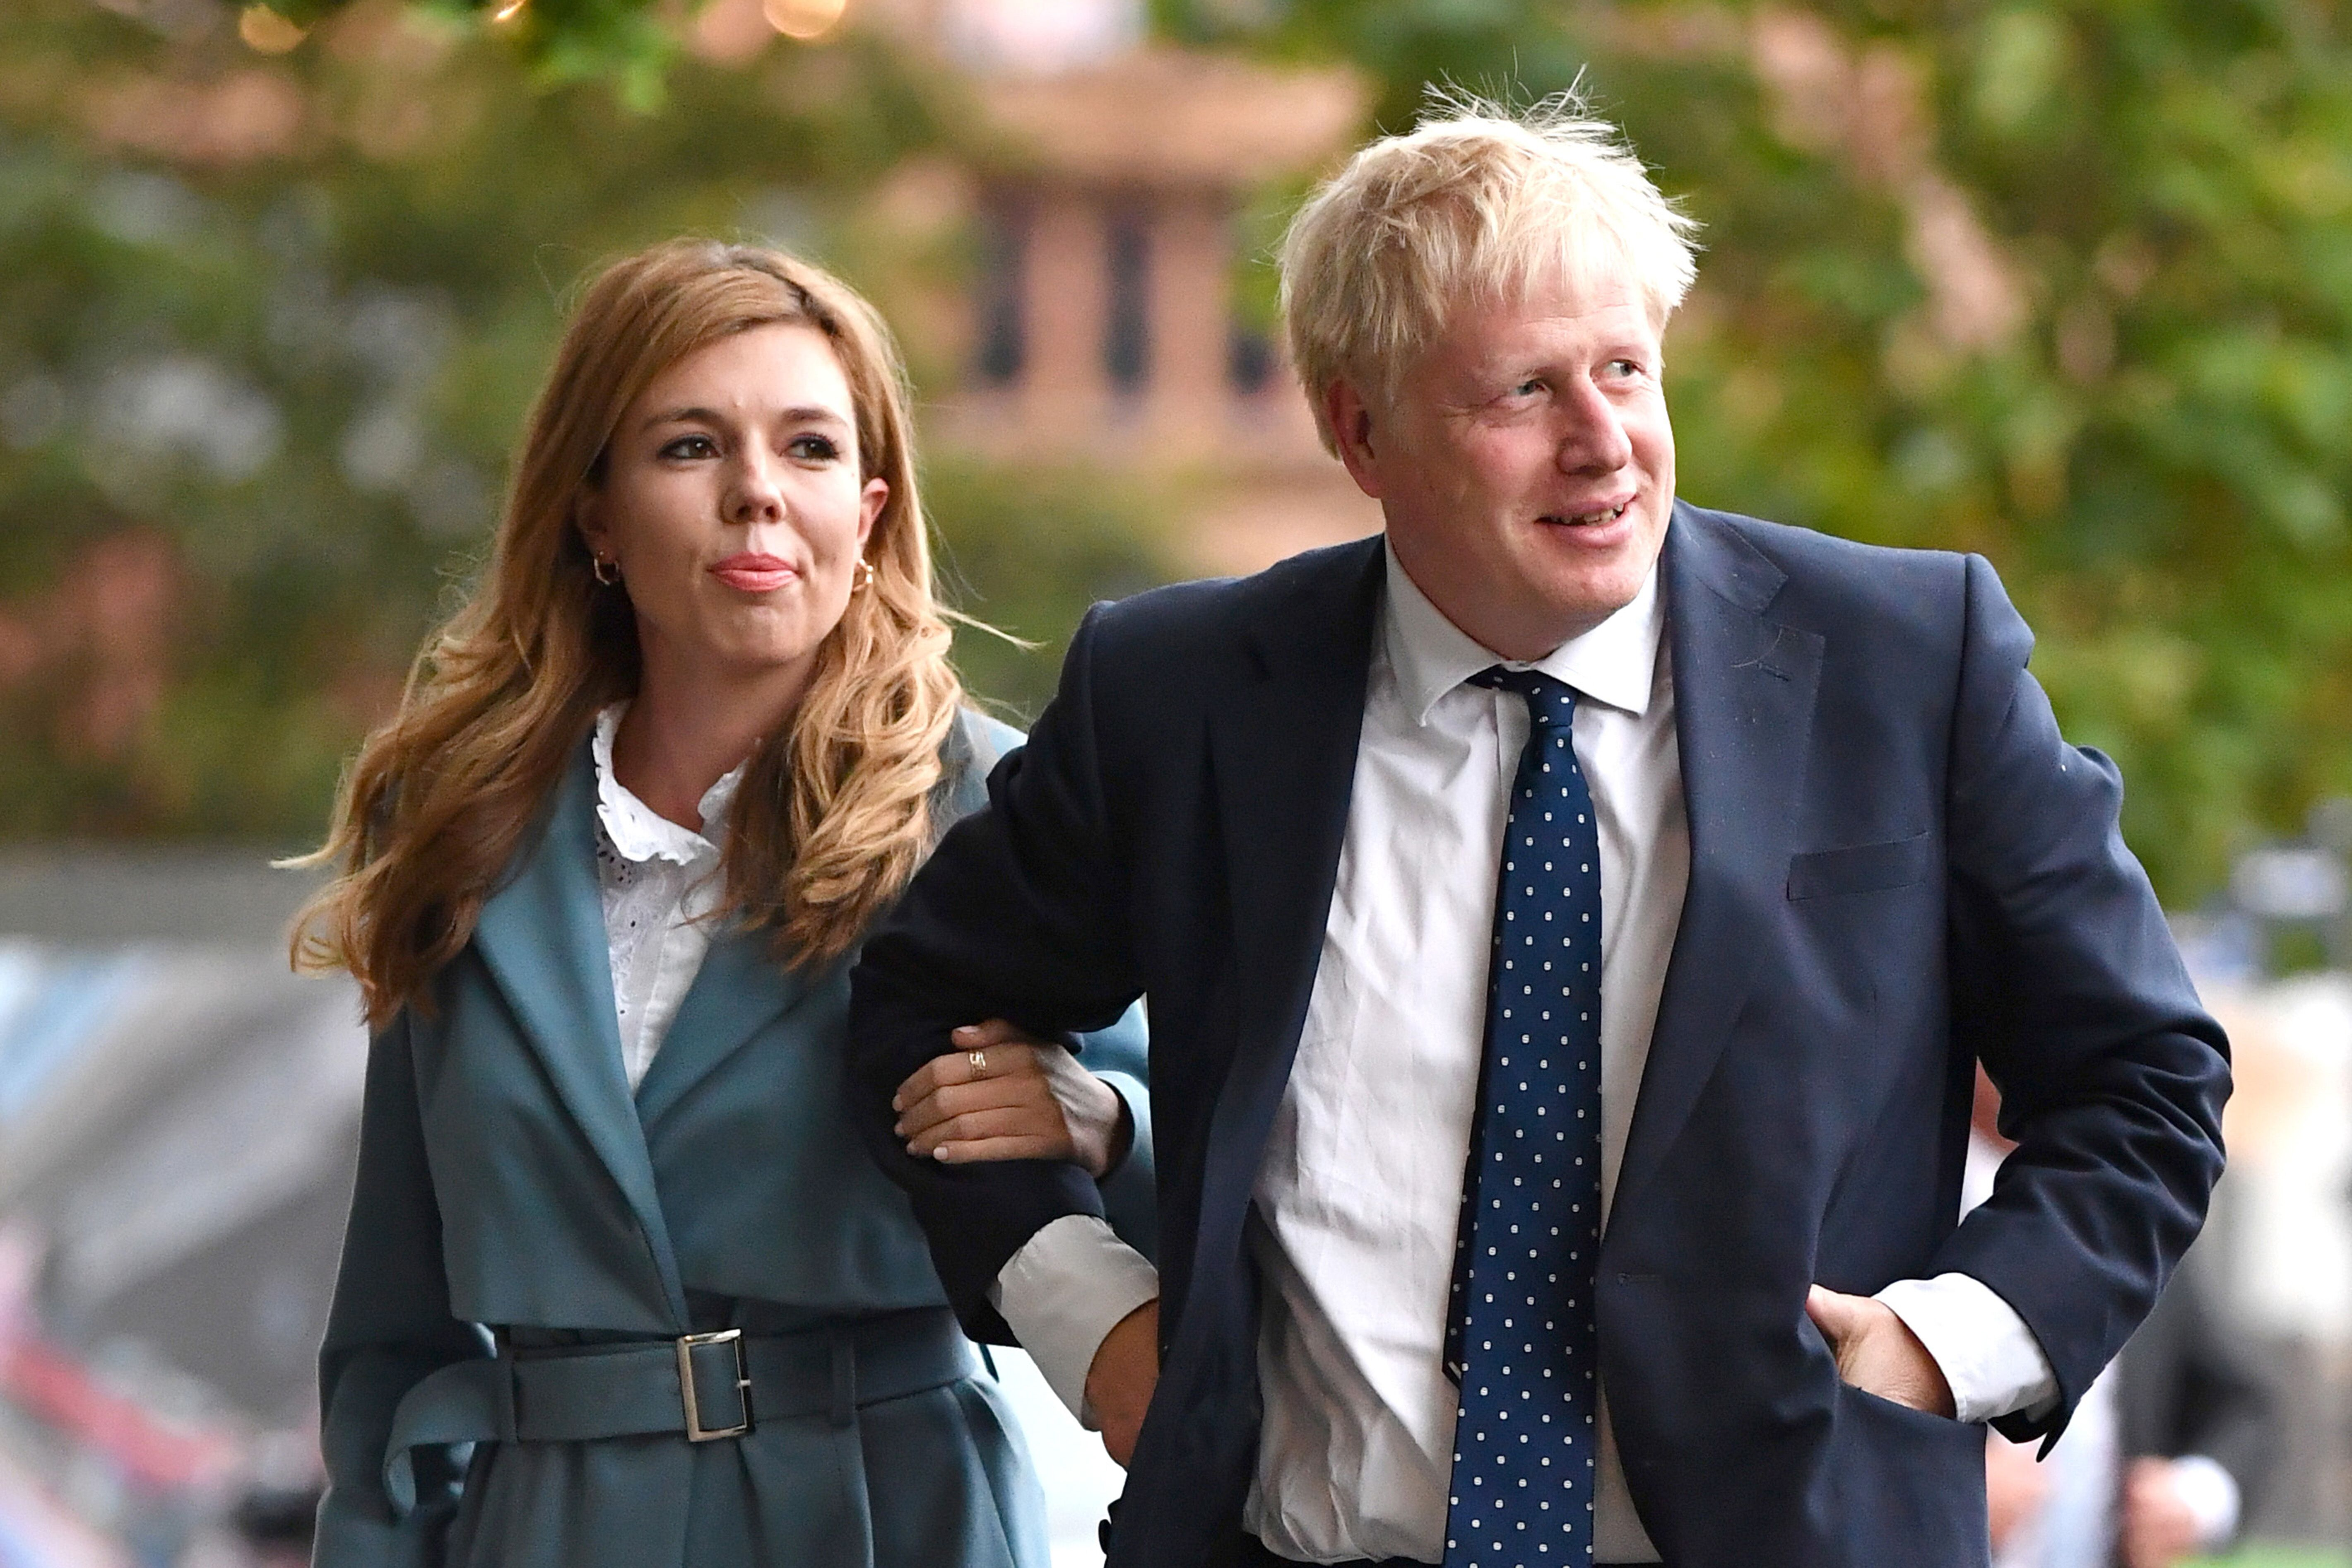 Carrie Symonds and Boris Johnson at the Conservative Party Conference on September 28, 2019, in Manchester, England | Photo: Jeff J Mitchell/Getty Images